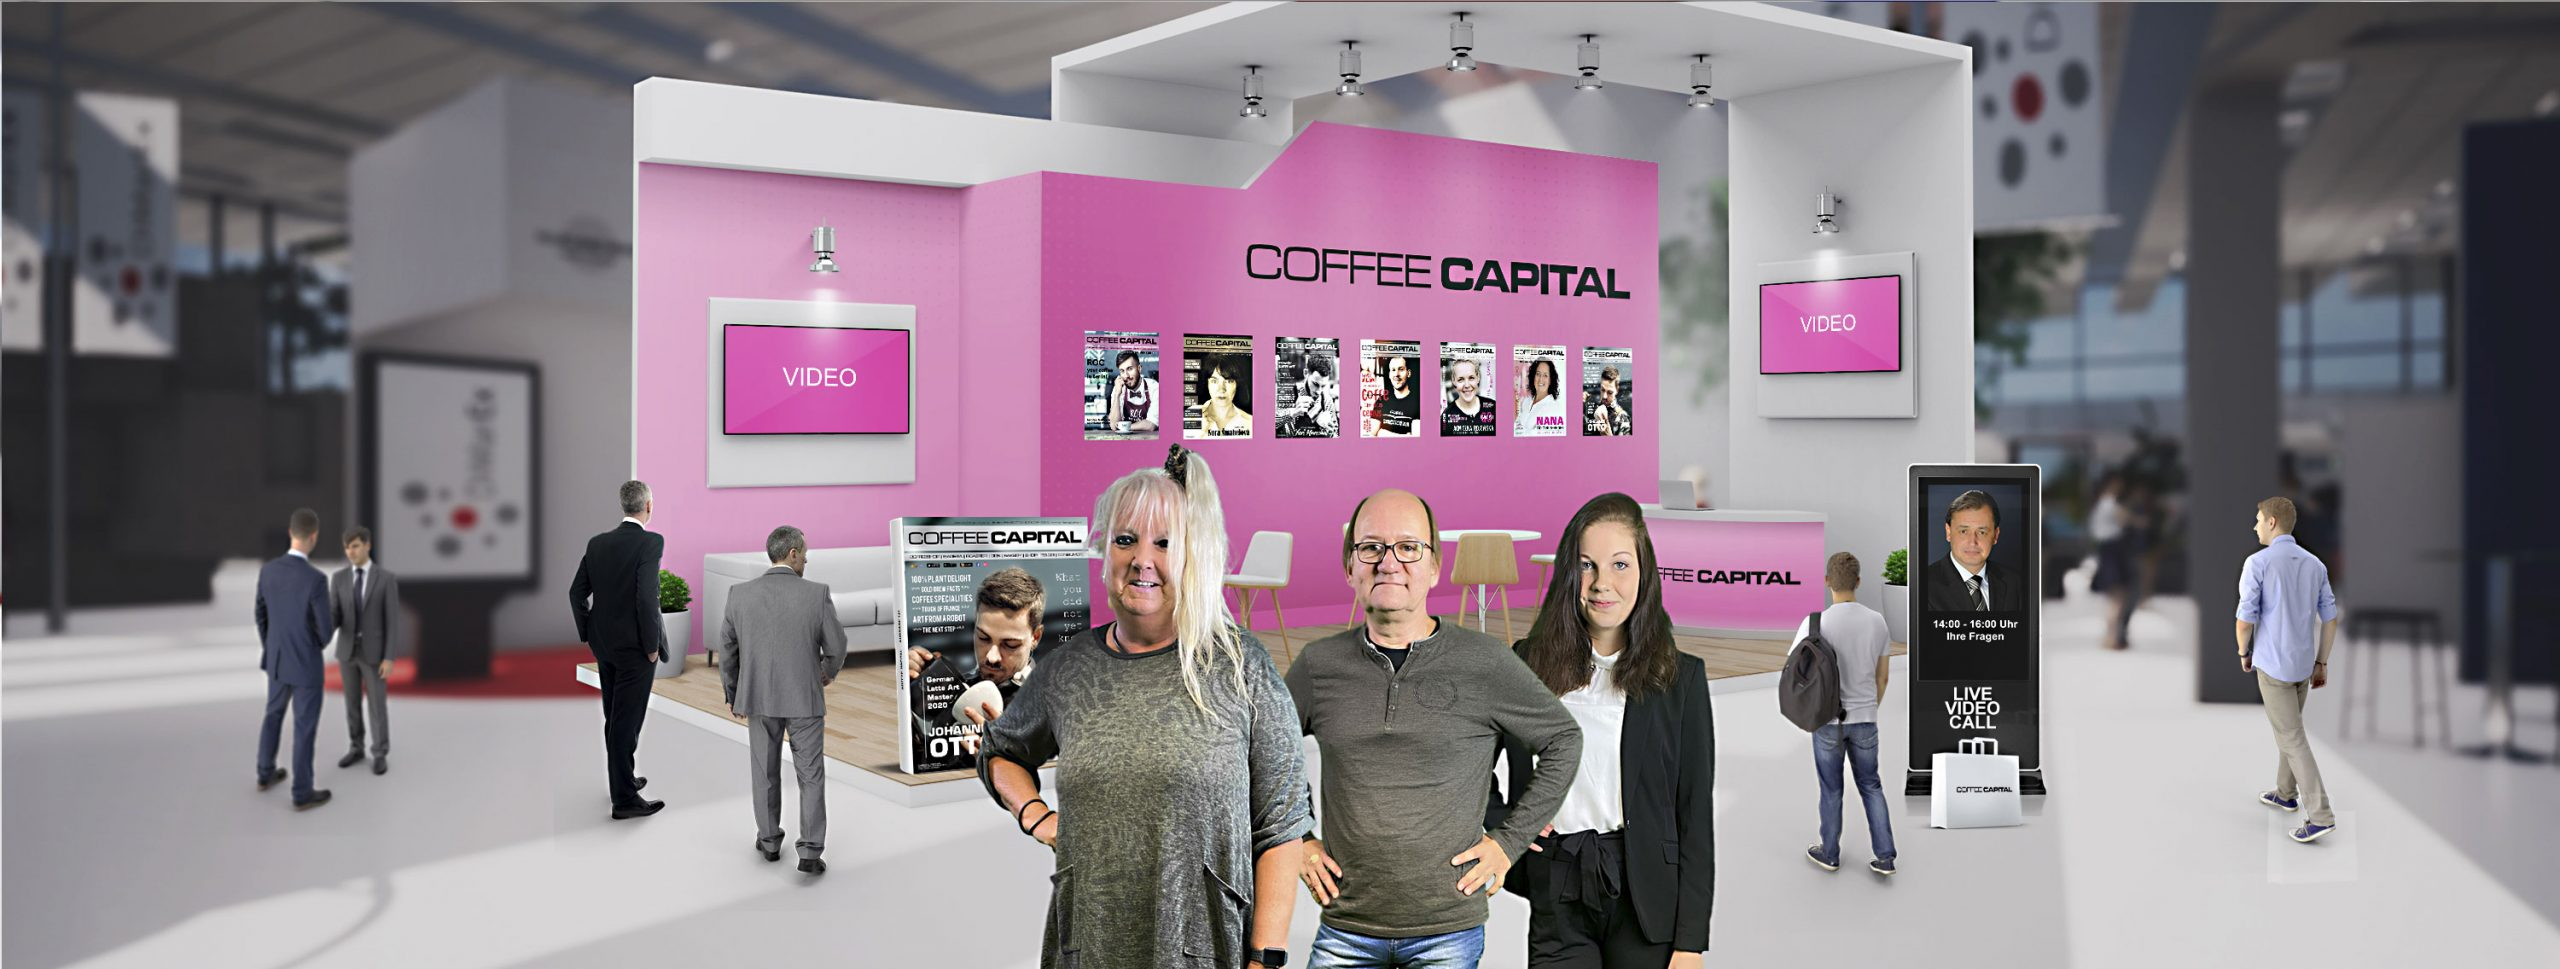 Coffee Capital endtra Vending Trade Festival Deutschland